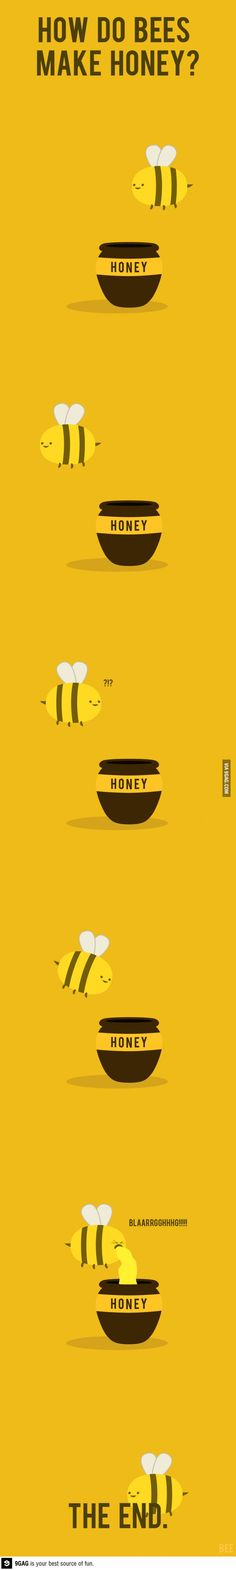 The birds & the bees lol